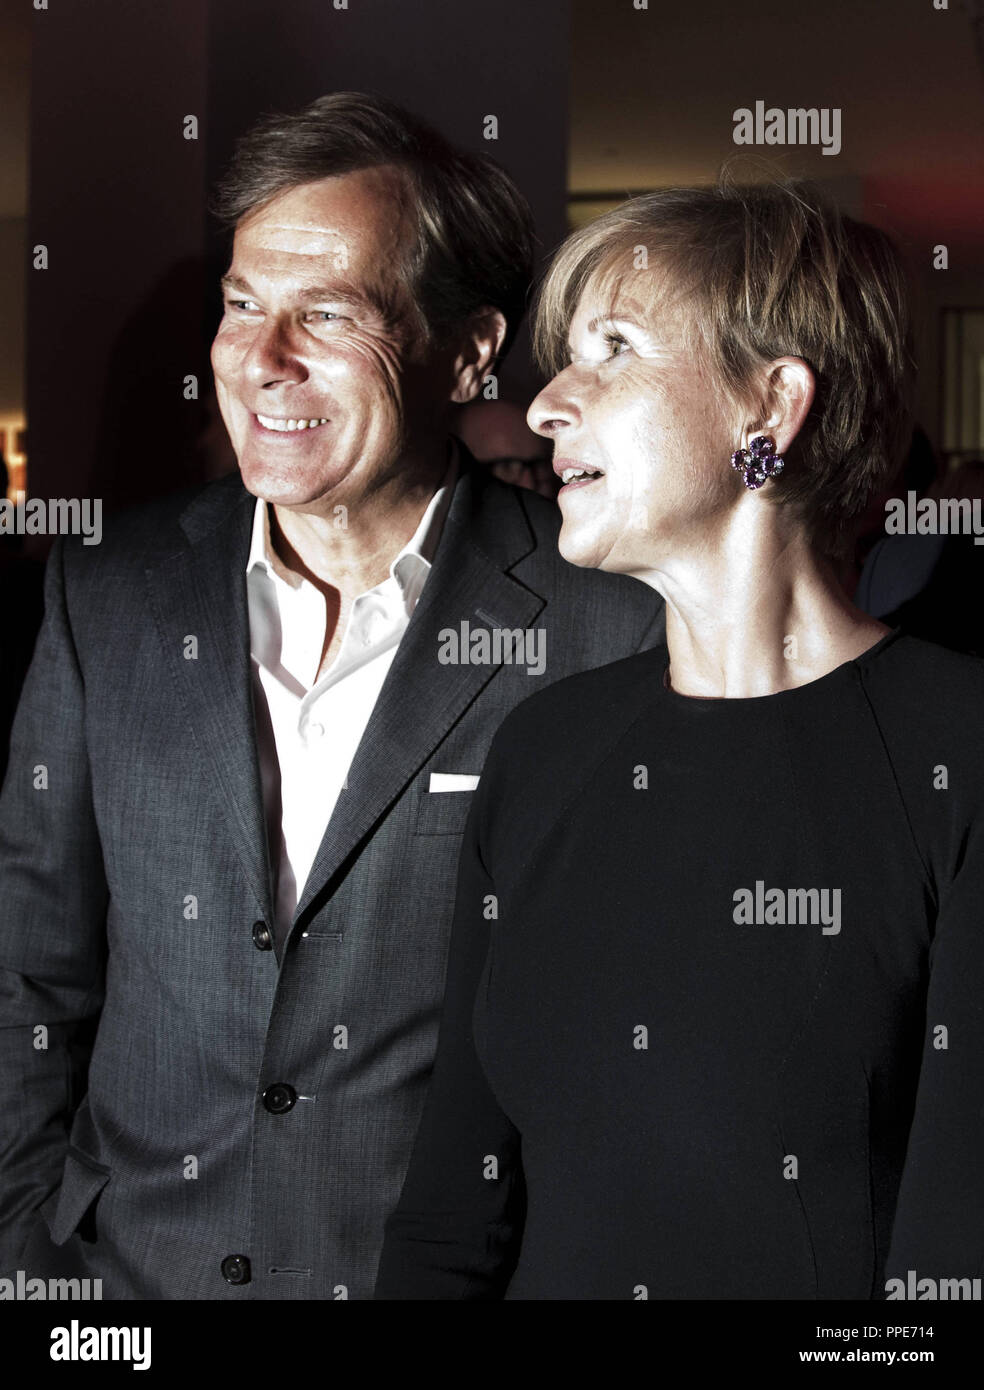 Entrepreneur Susanne Klatten with husband Jan Klatten at the 13th PIN Fest of 'Friends of the Pinakothek der Moderne'. As every year, the motto of the evening is LET'S PARTY FOR A PIECE OF ART. - Stock Image